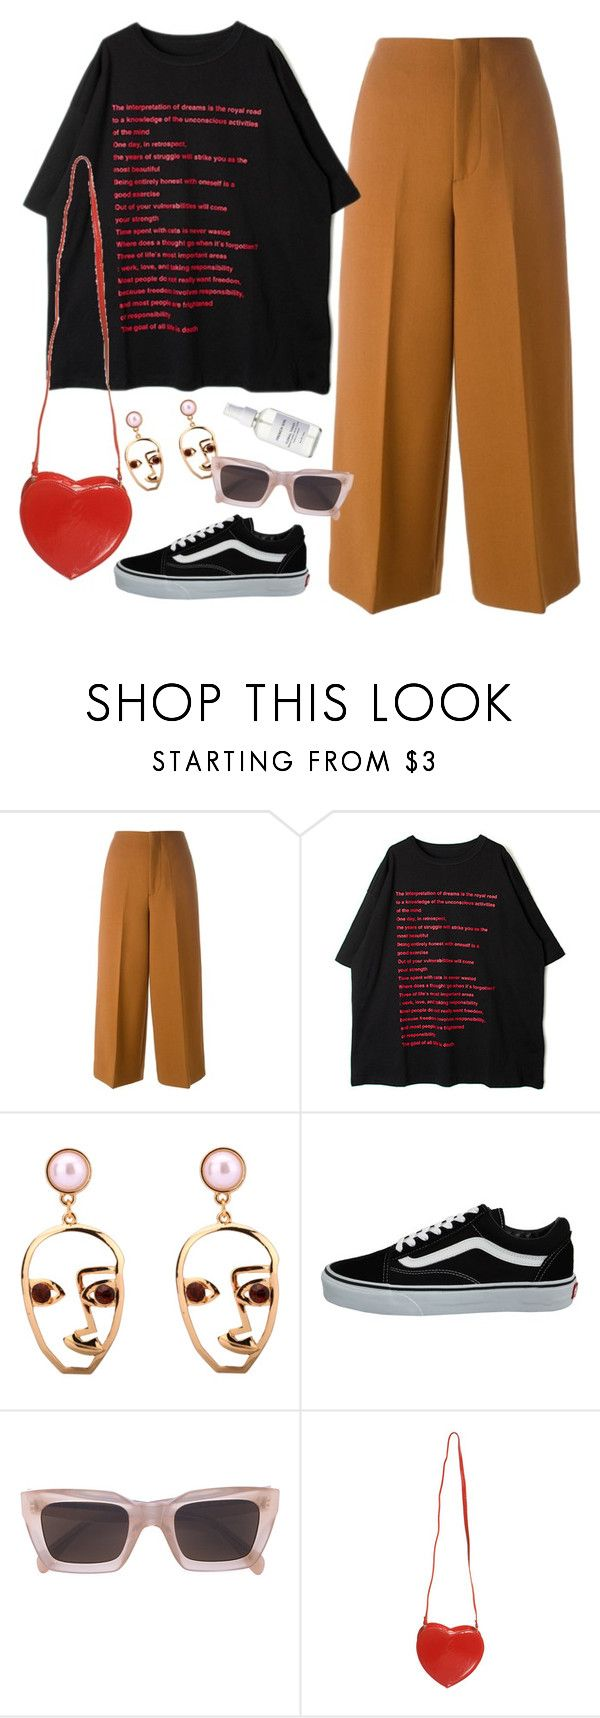 """""""crab fest at red lobster"""" by chanelandcoke ❤ liked on Polyvore featuring Marni, Vans, CÉLINE, Topshop and French Girl"""